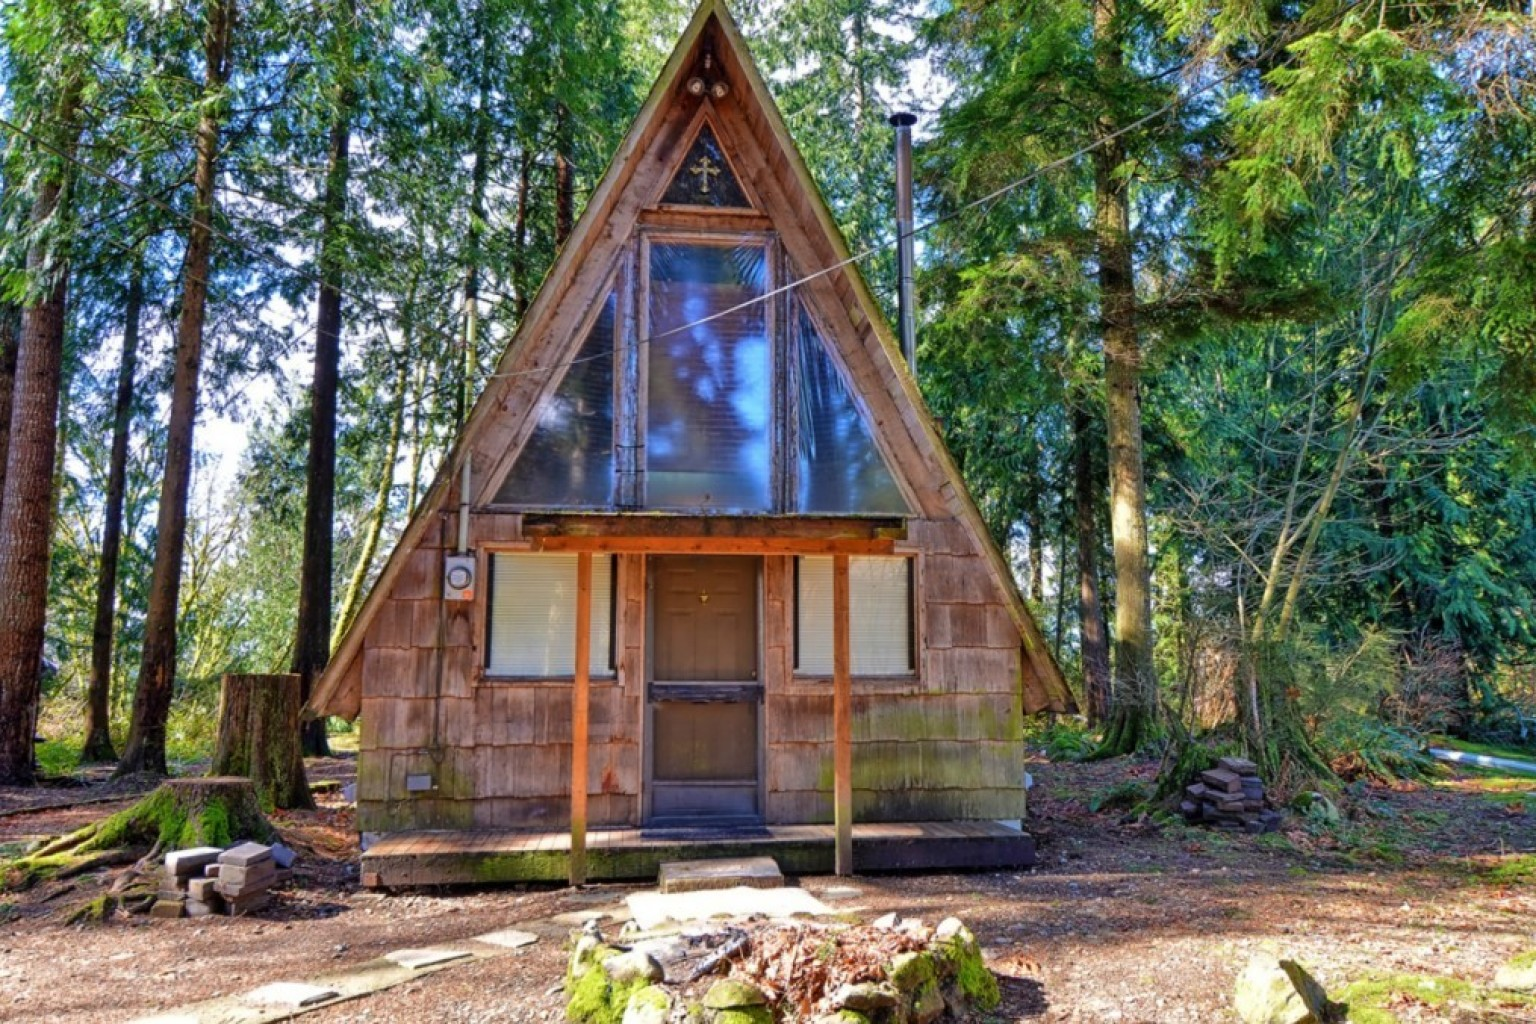 This A-Frame Tiny Home For Sale Would Make The Perfect Summer Getaway  (PHOTOS) | HuffPost